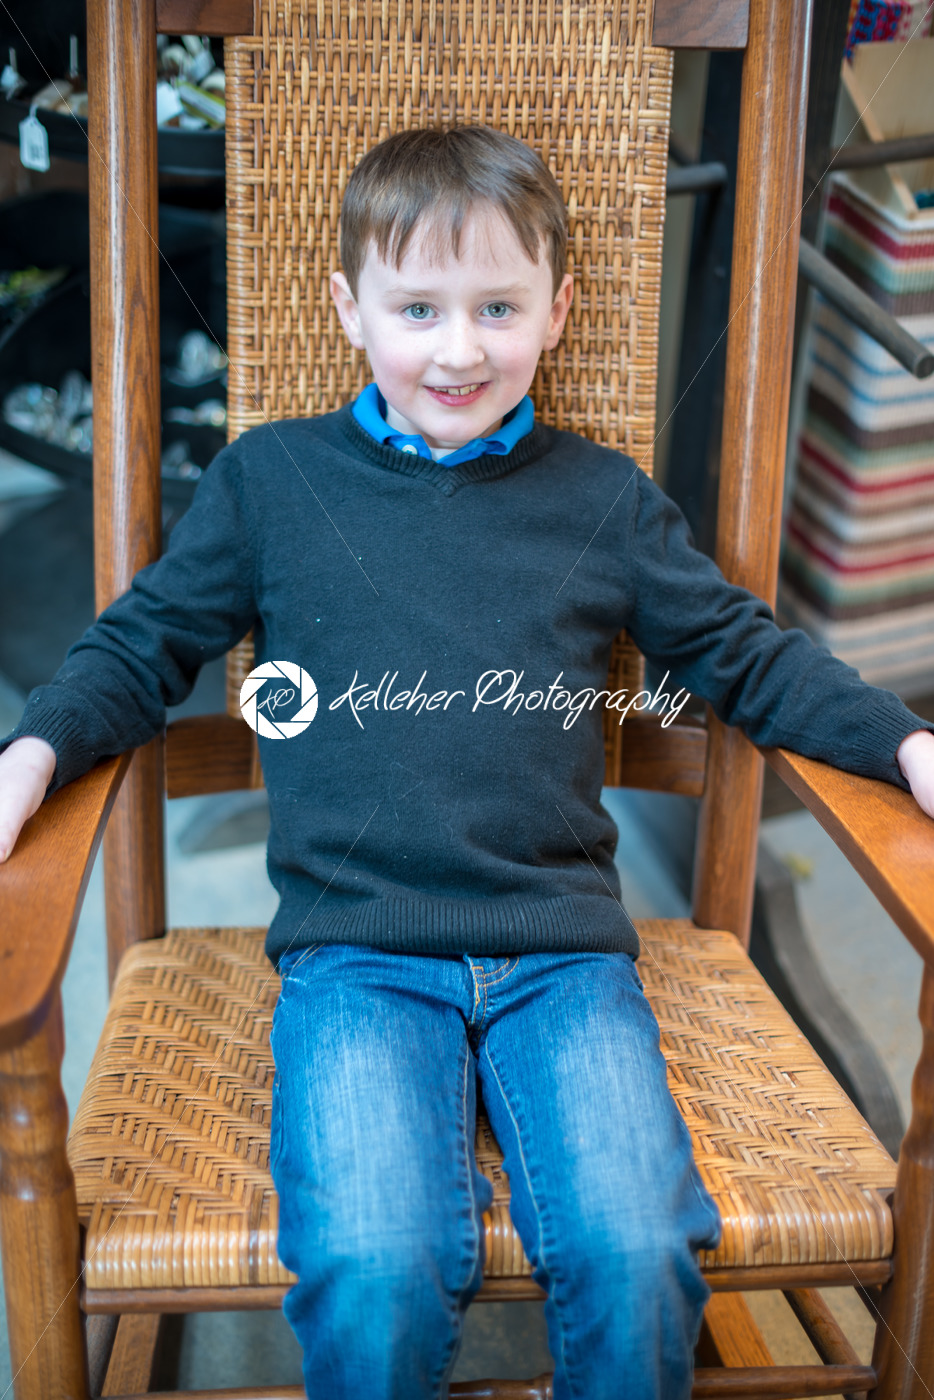 handsome young boy sits in chair all dressed up for Easter holidays - Kelleher Photography Store